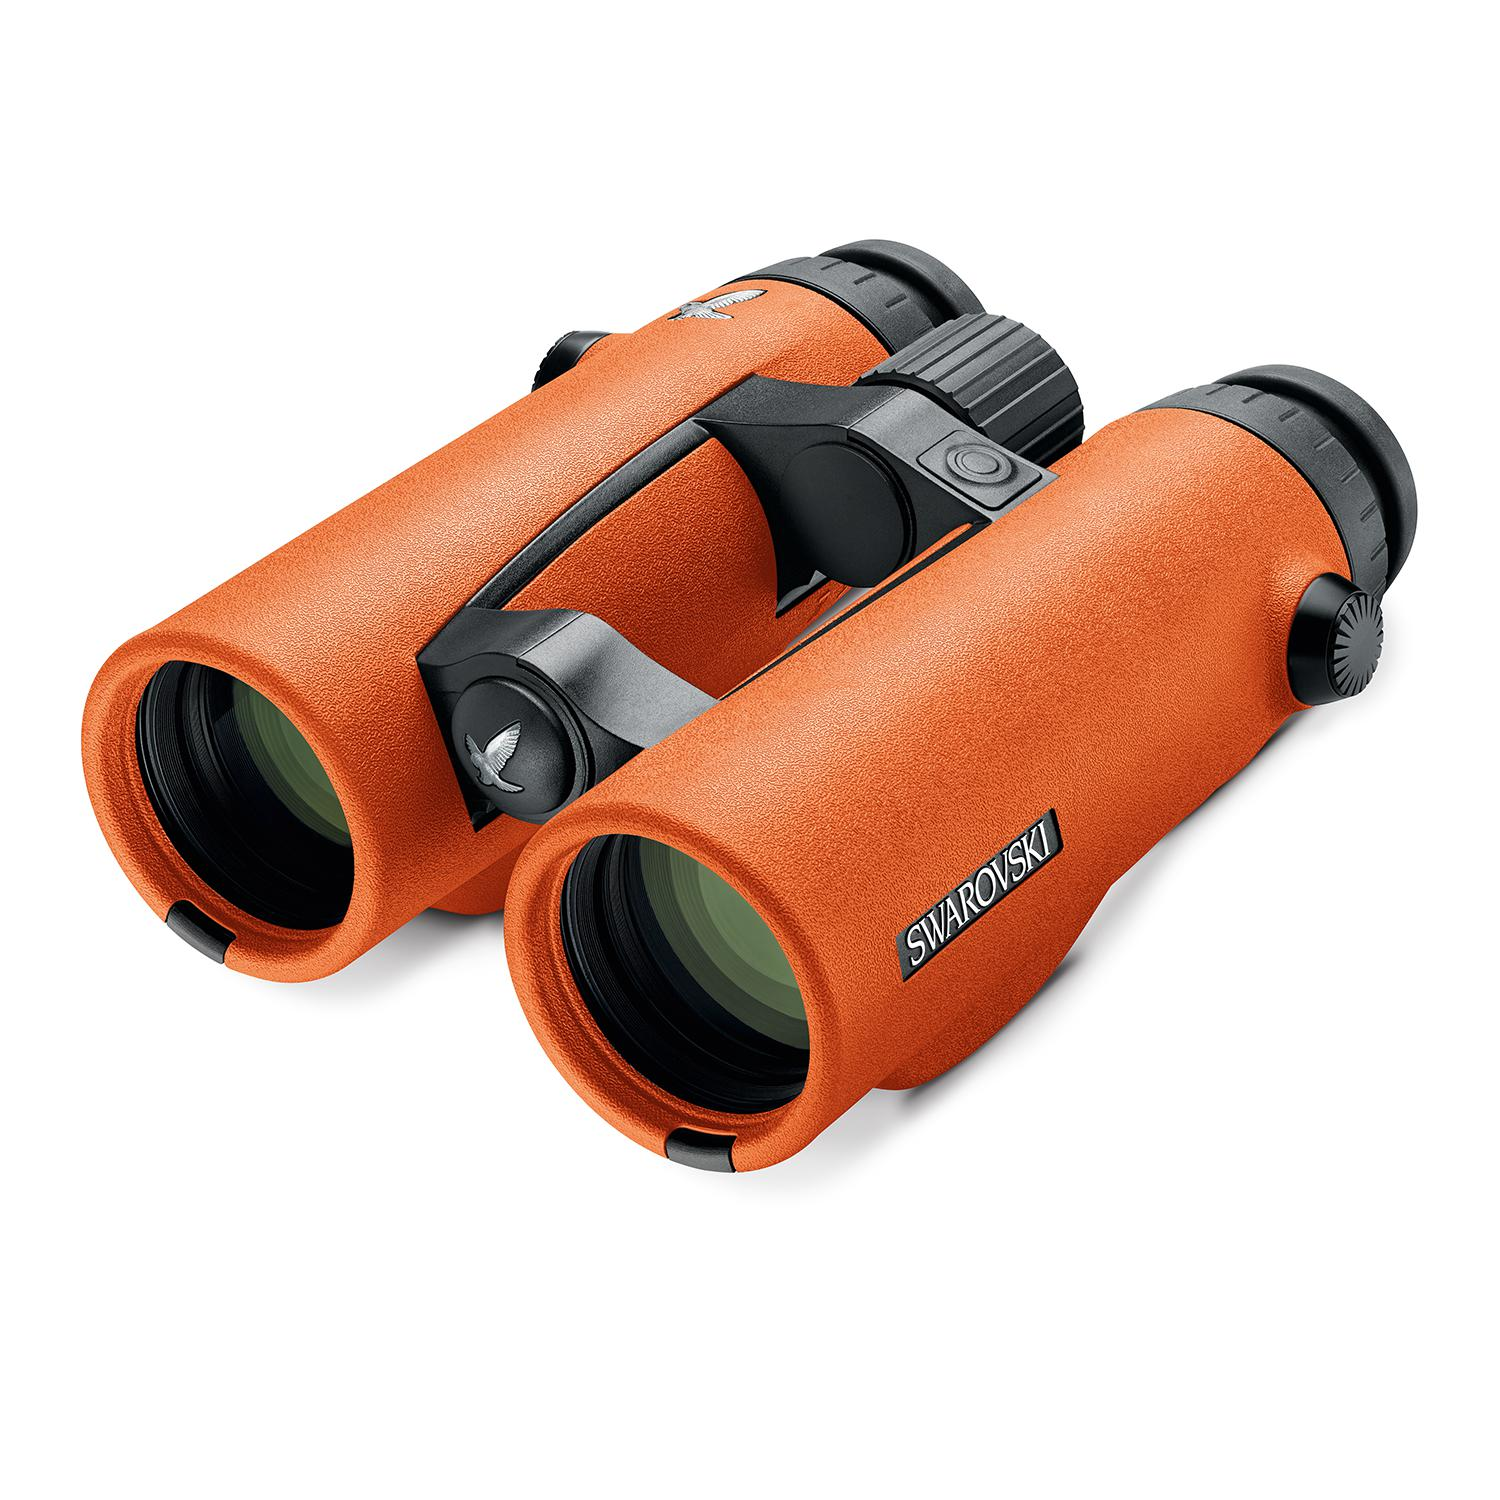 Swarovski Ccsp Comfort Carrying Strap Pro For Field Pro Binoculars Novel Design; In